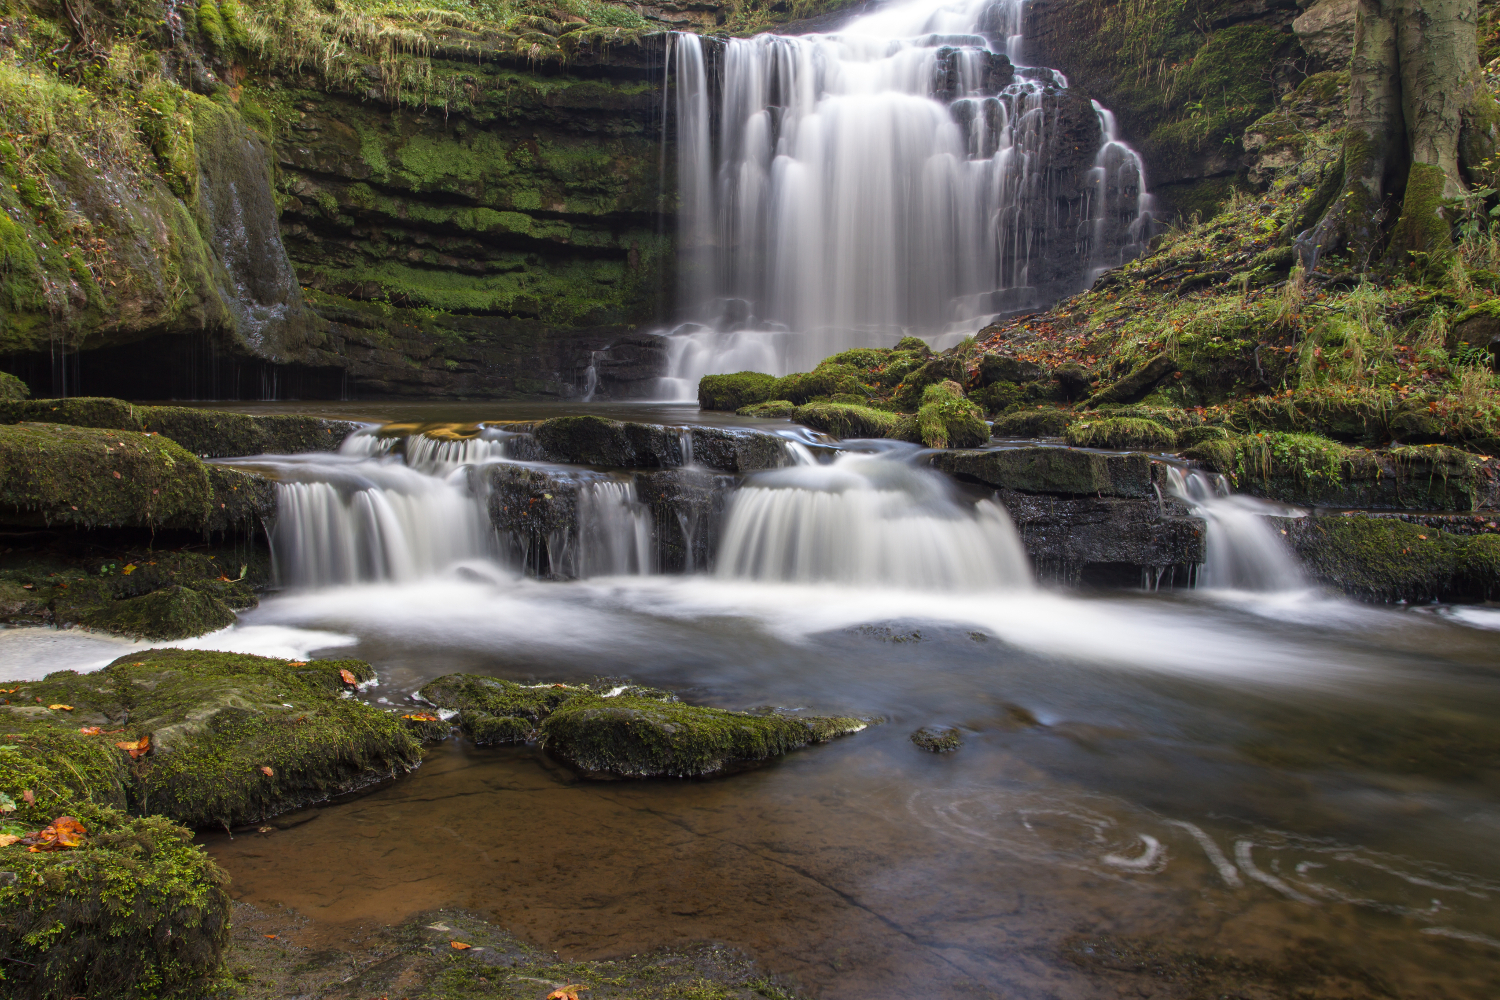 Scaleber Force, The Yorkshire Dales National Park